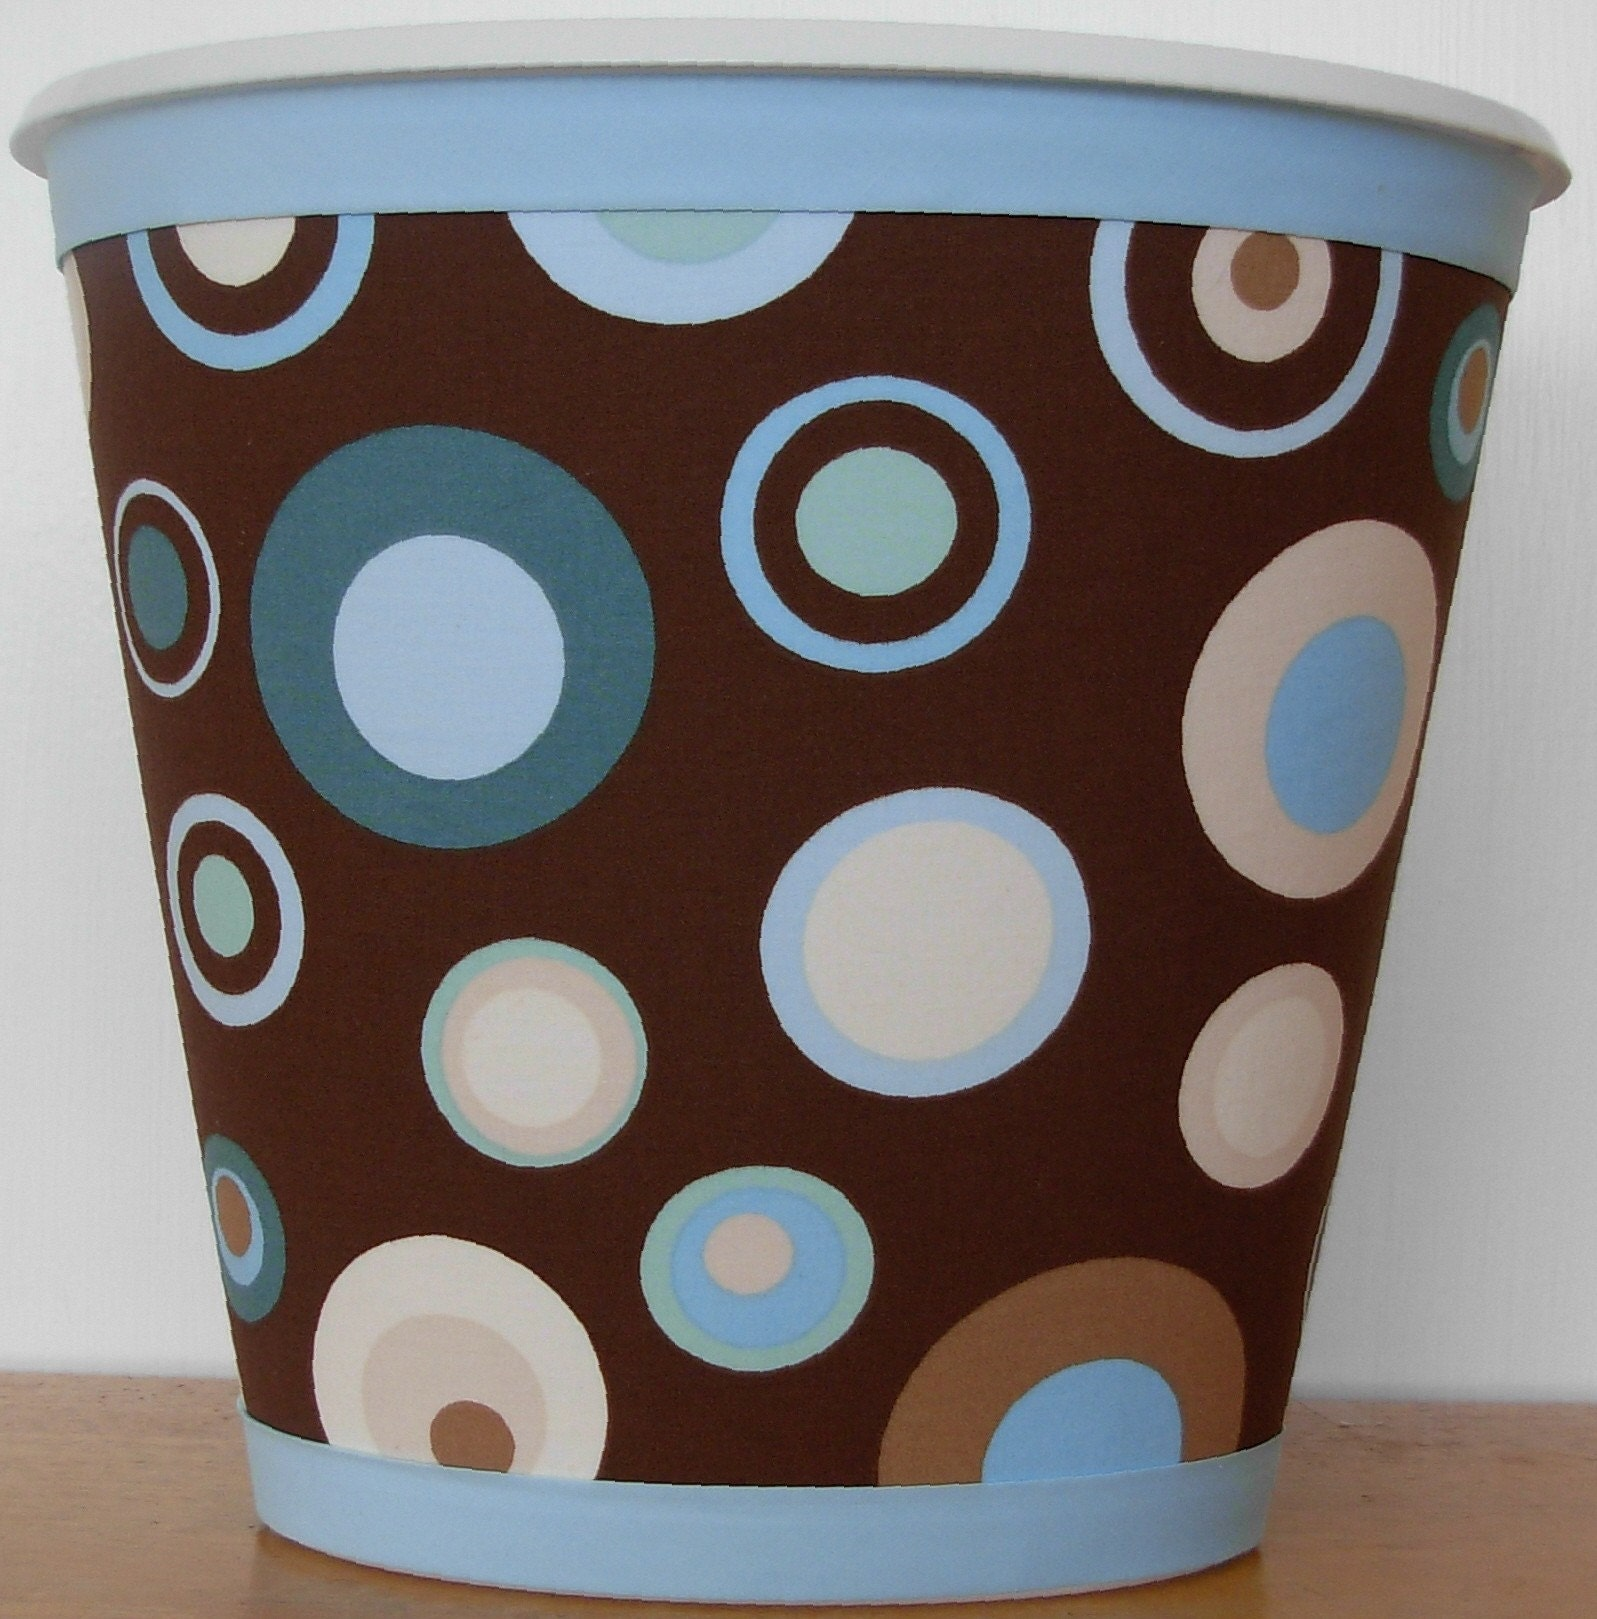 Chocolate Brown Wastebasket with Modern Dots in Light Blue and Aqua